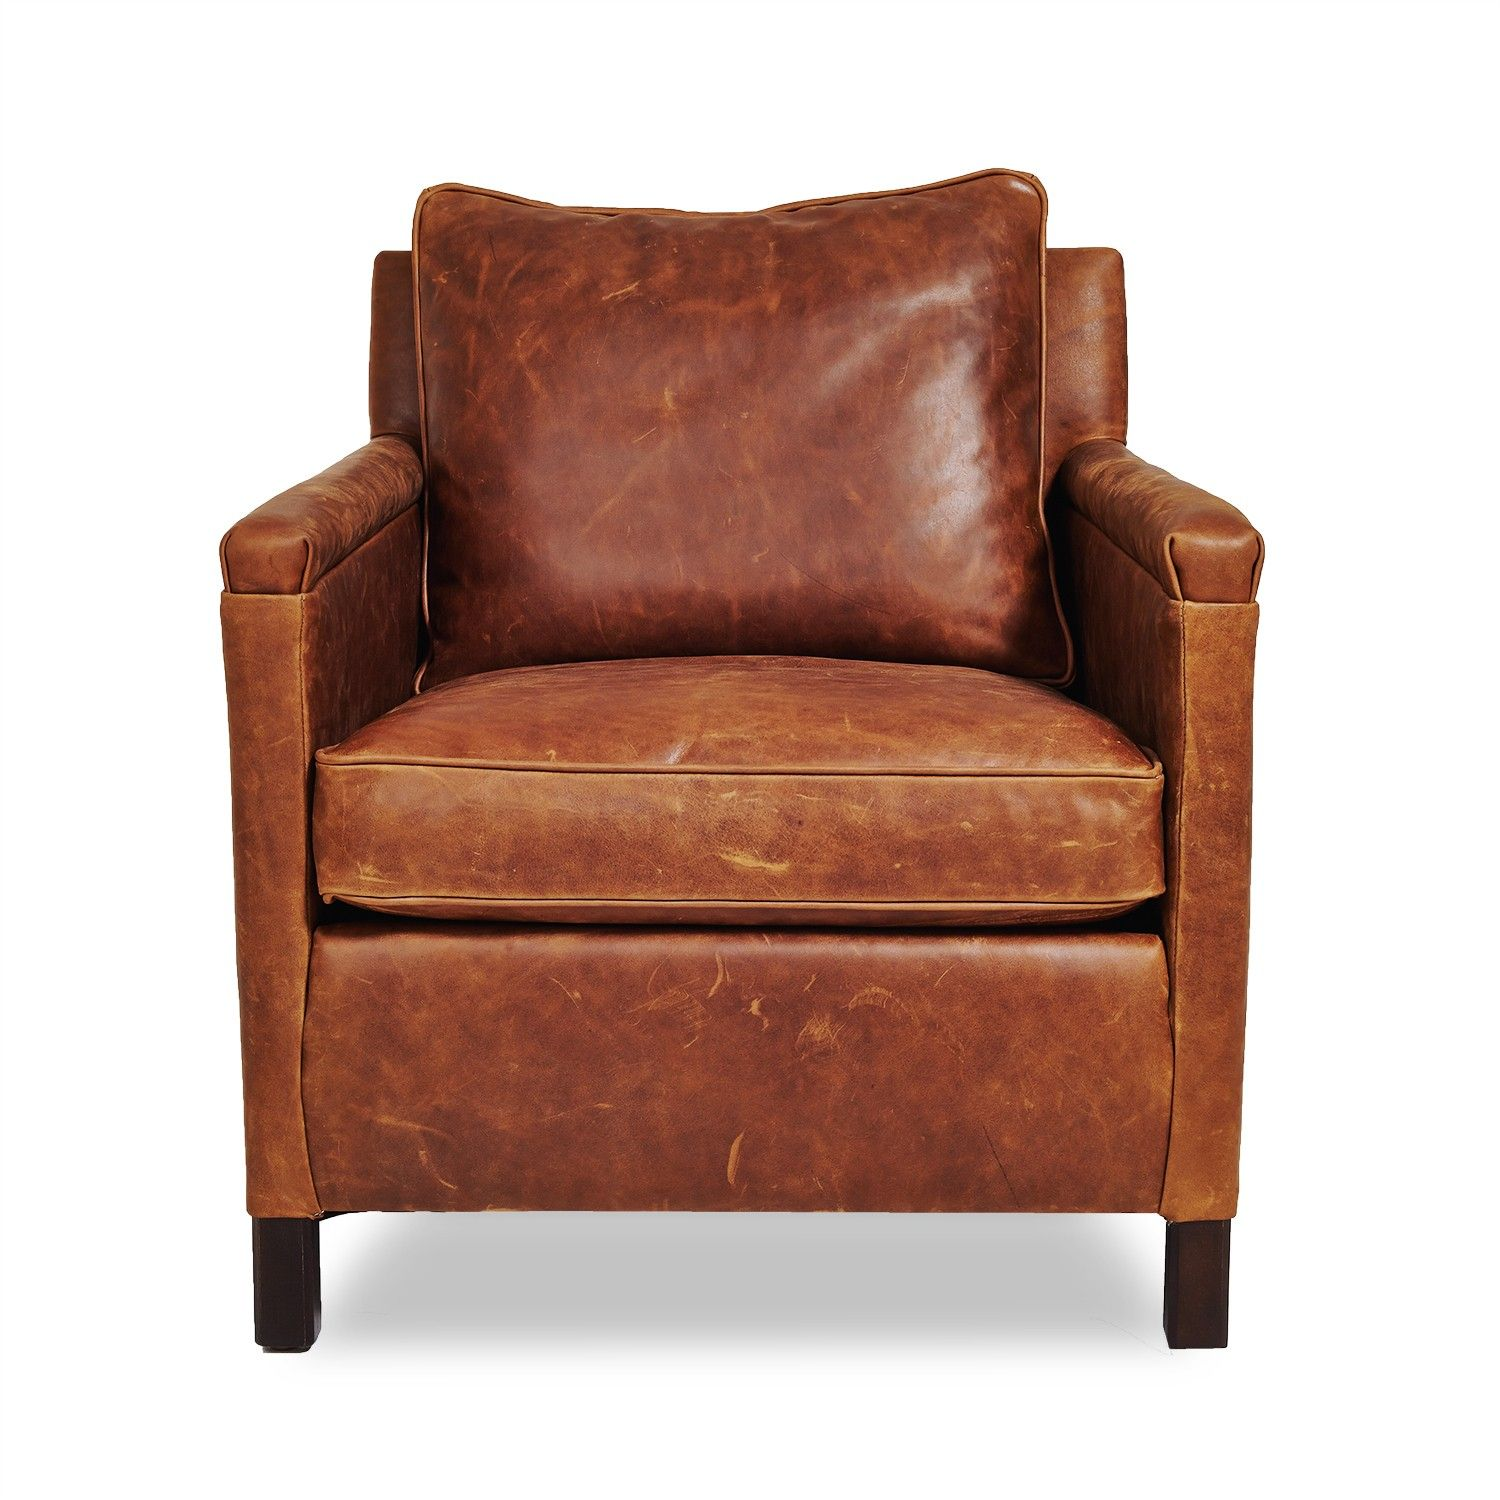 The Heston gives an urban edge to the classic leather chair